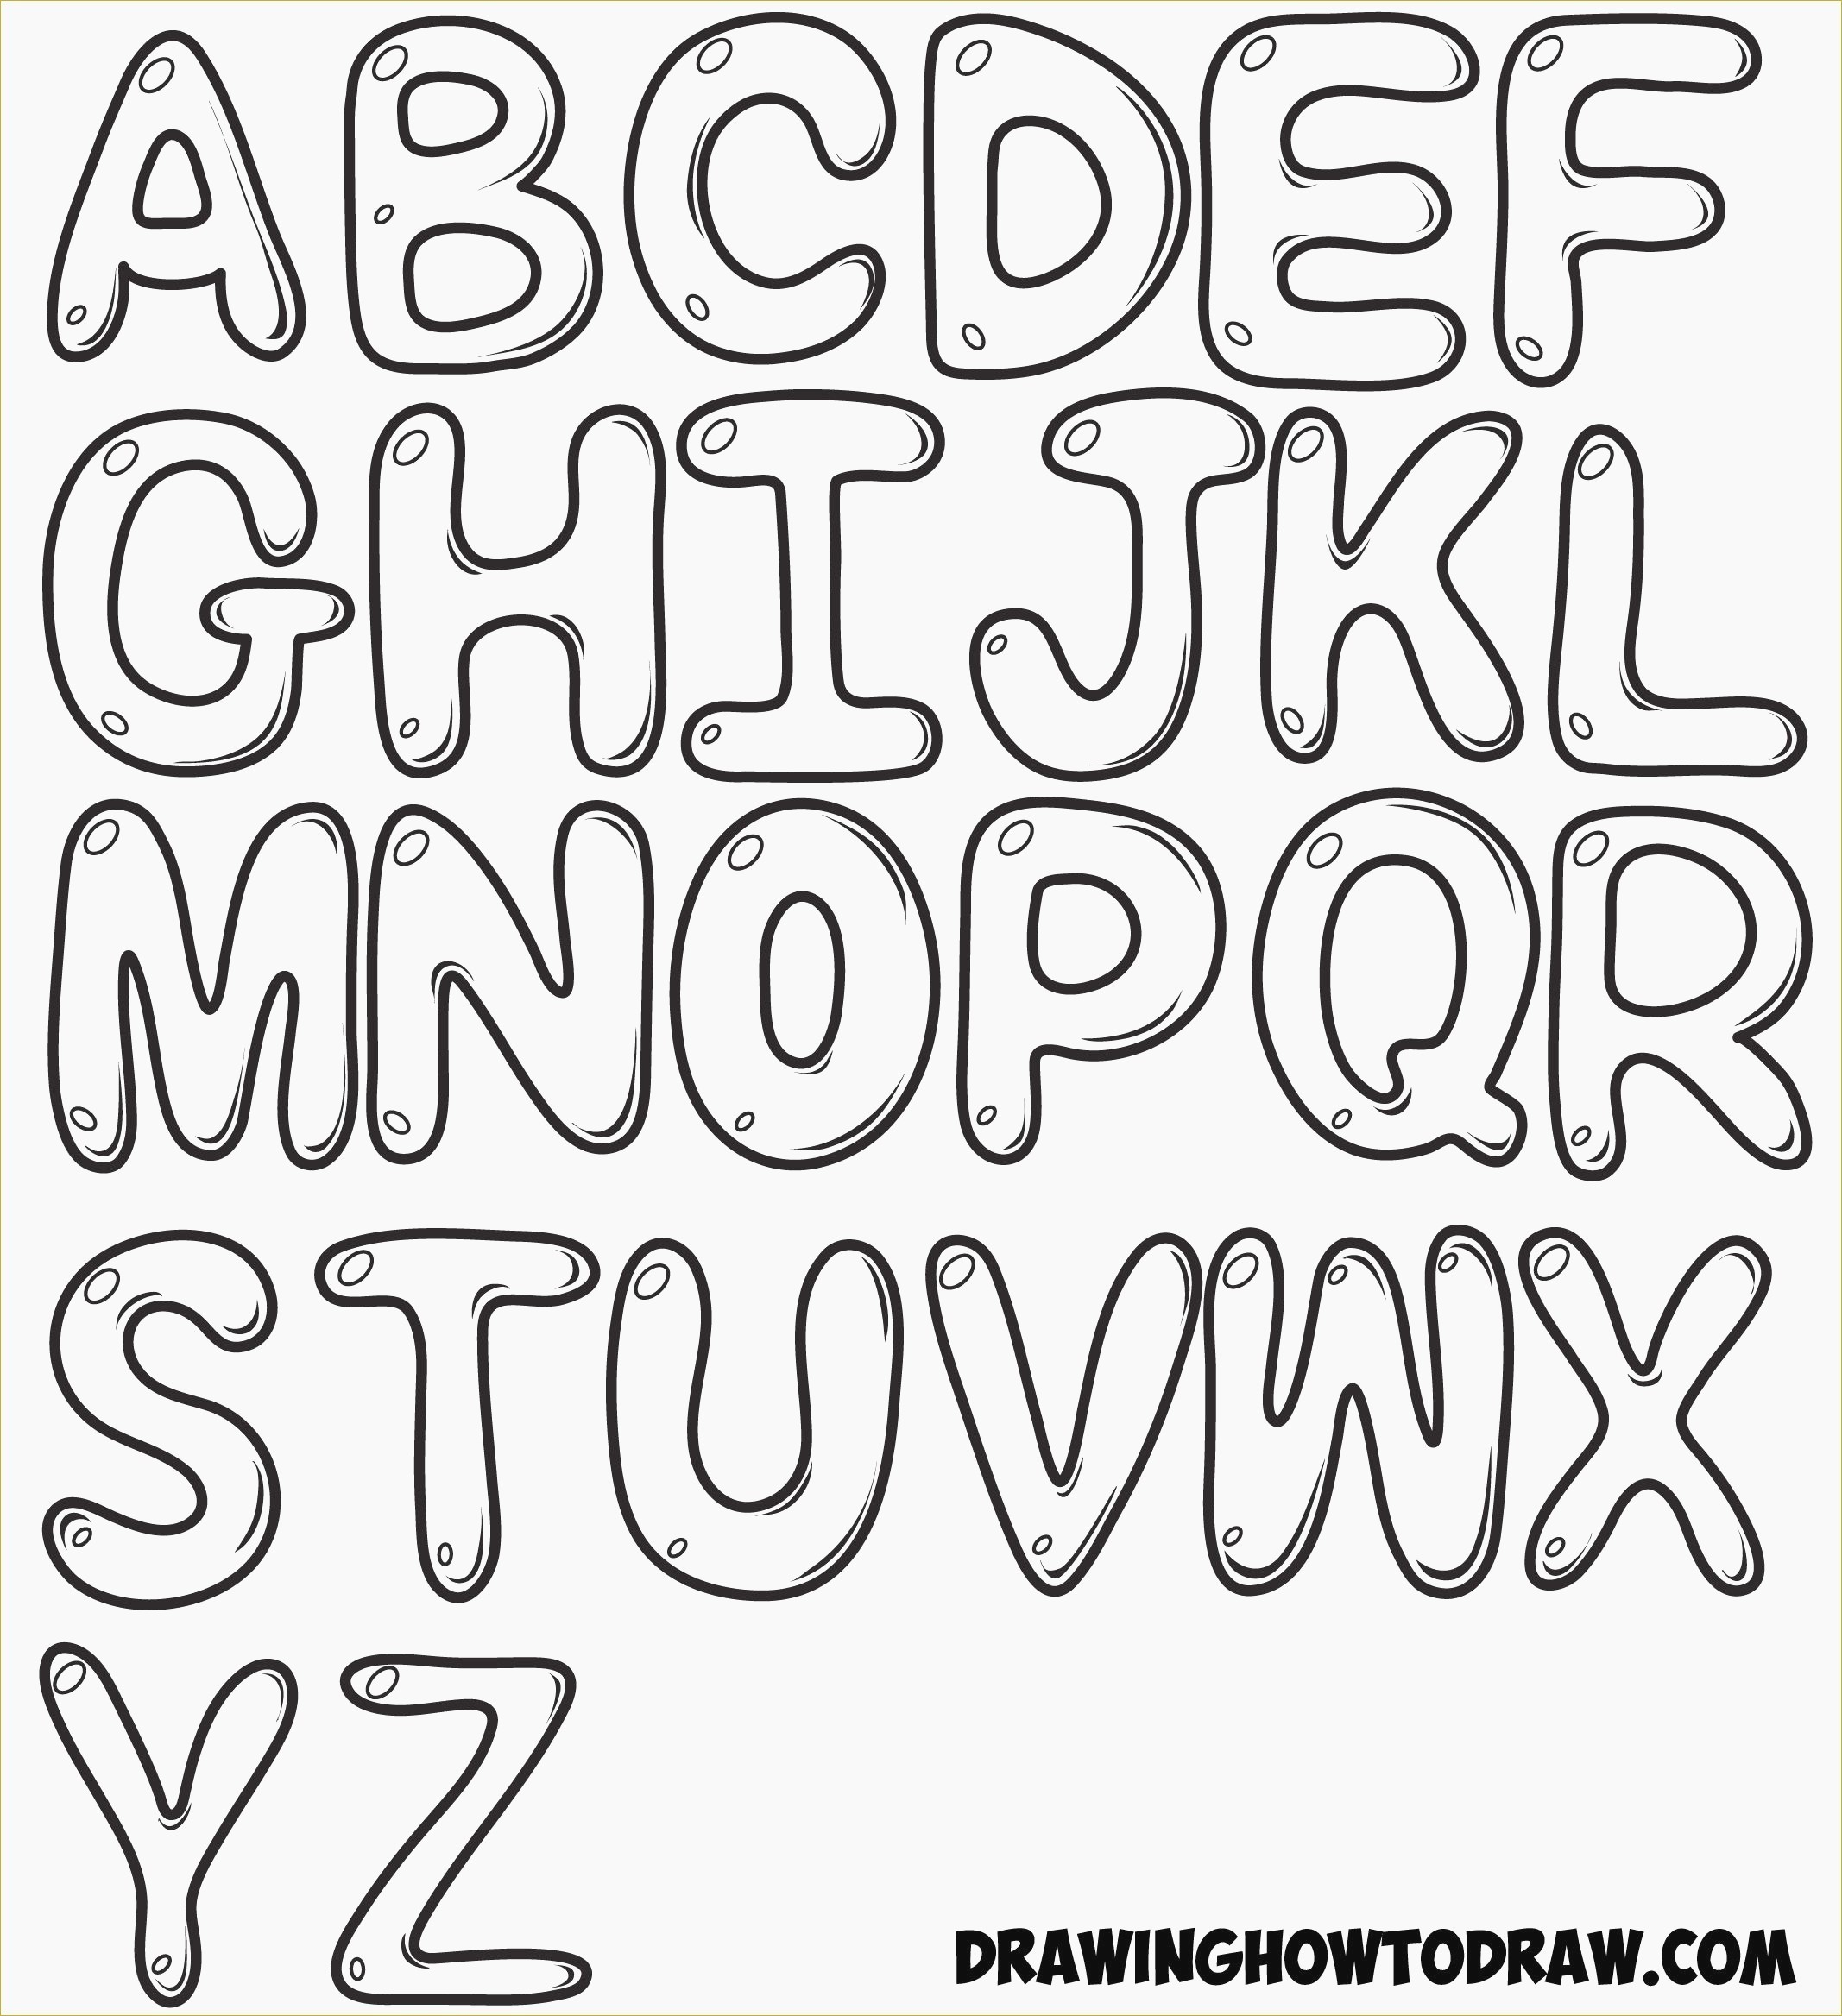 Printable Bubble Letters Period - 9.9.hus-Noorderpad.de • - Free Printable Bubble Letters